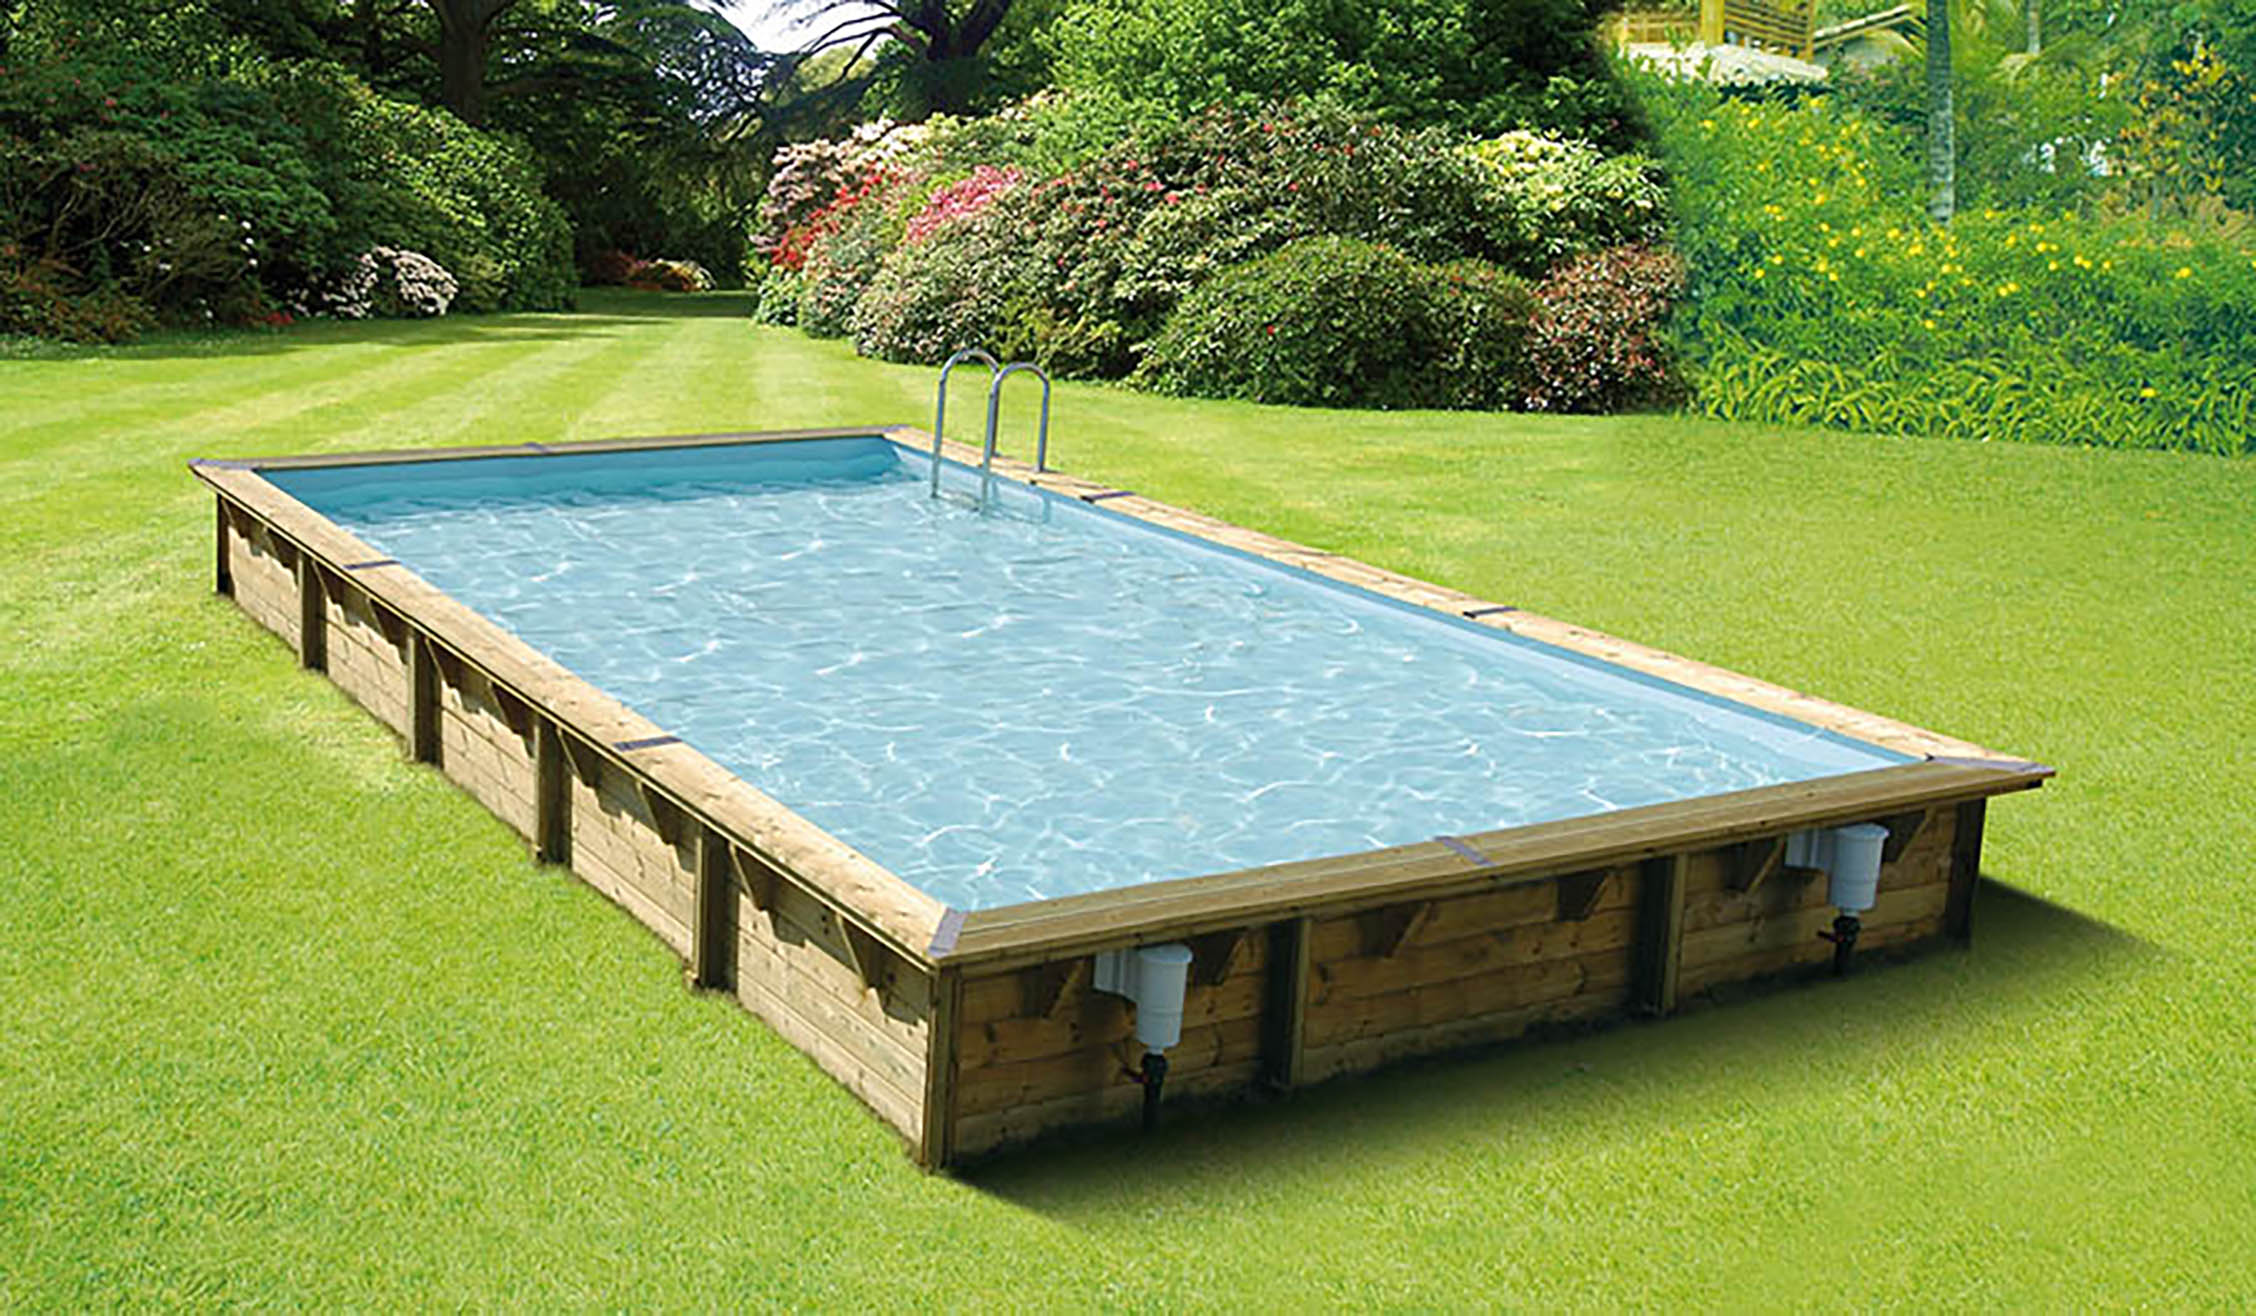 Amenagement piscine bois hors sol id es for Installation piscine hors sol